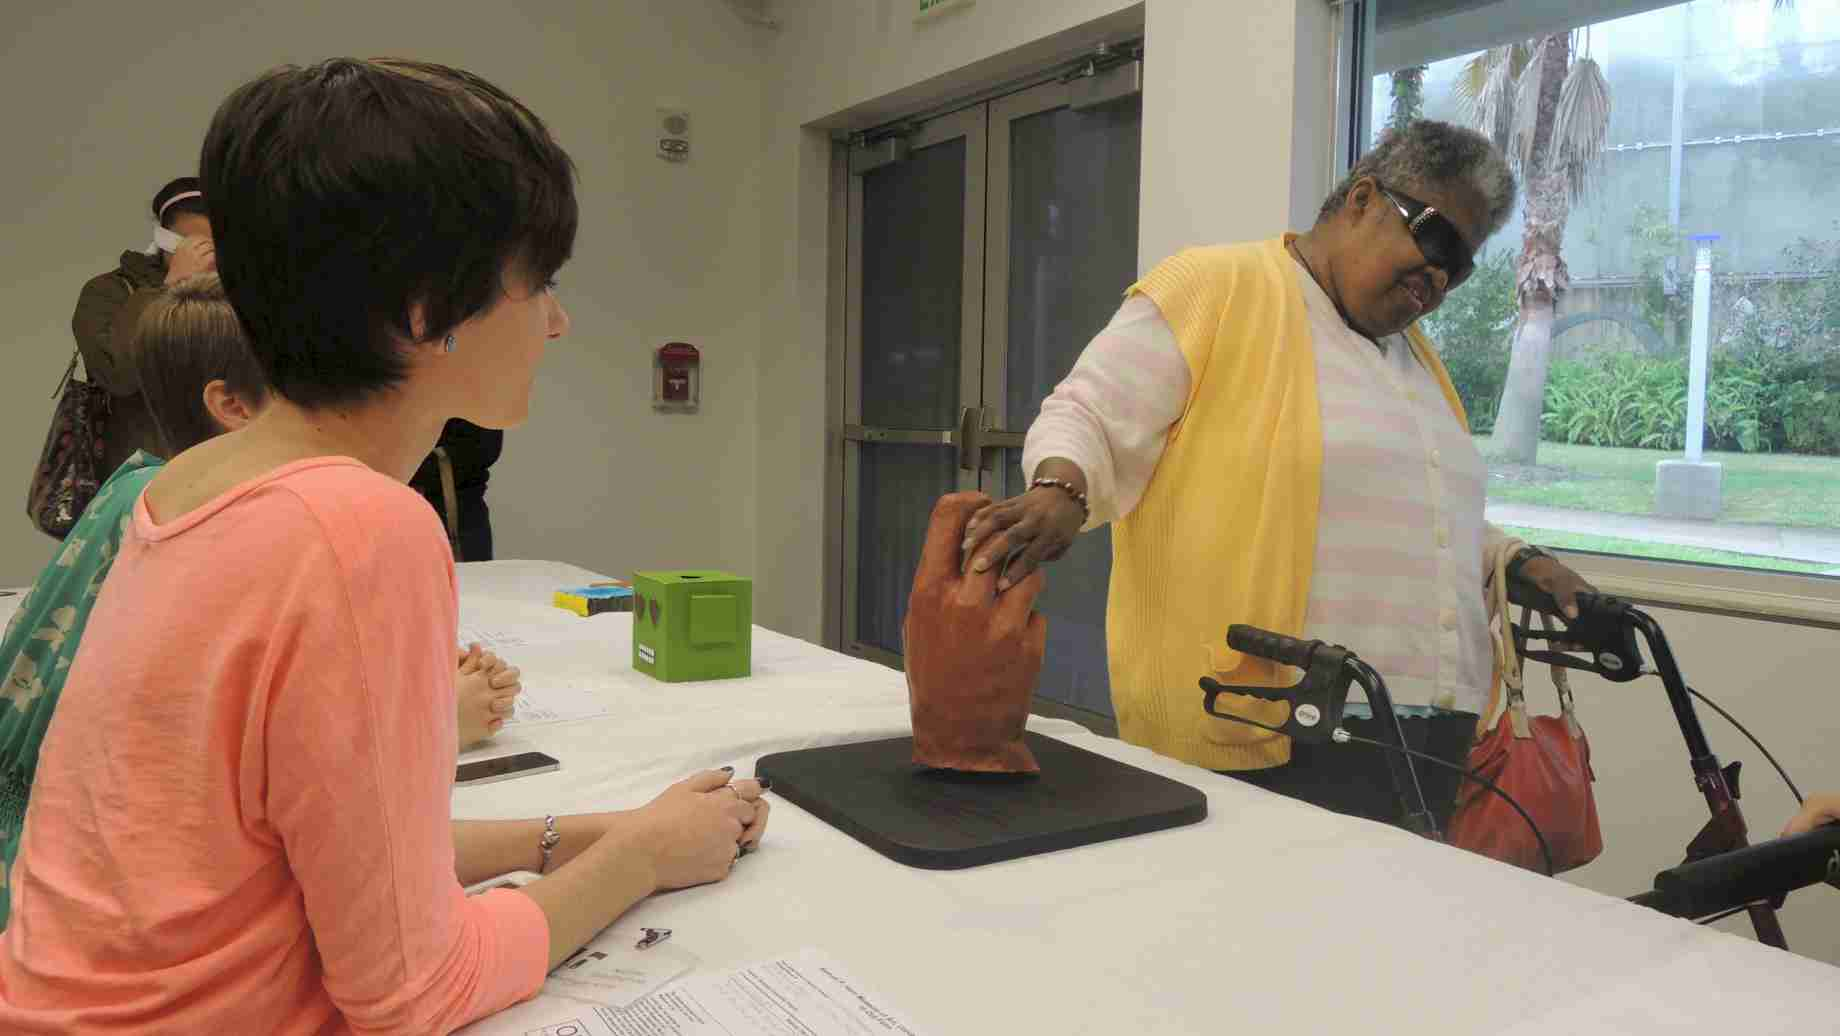 Undergraduate art education students created touchable artworks for a Mindsight exhibit at the Harn Museum.